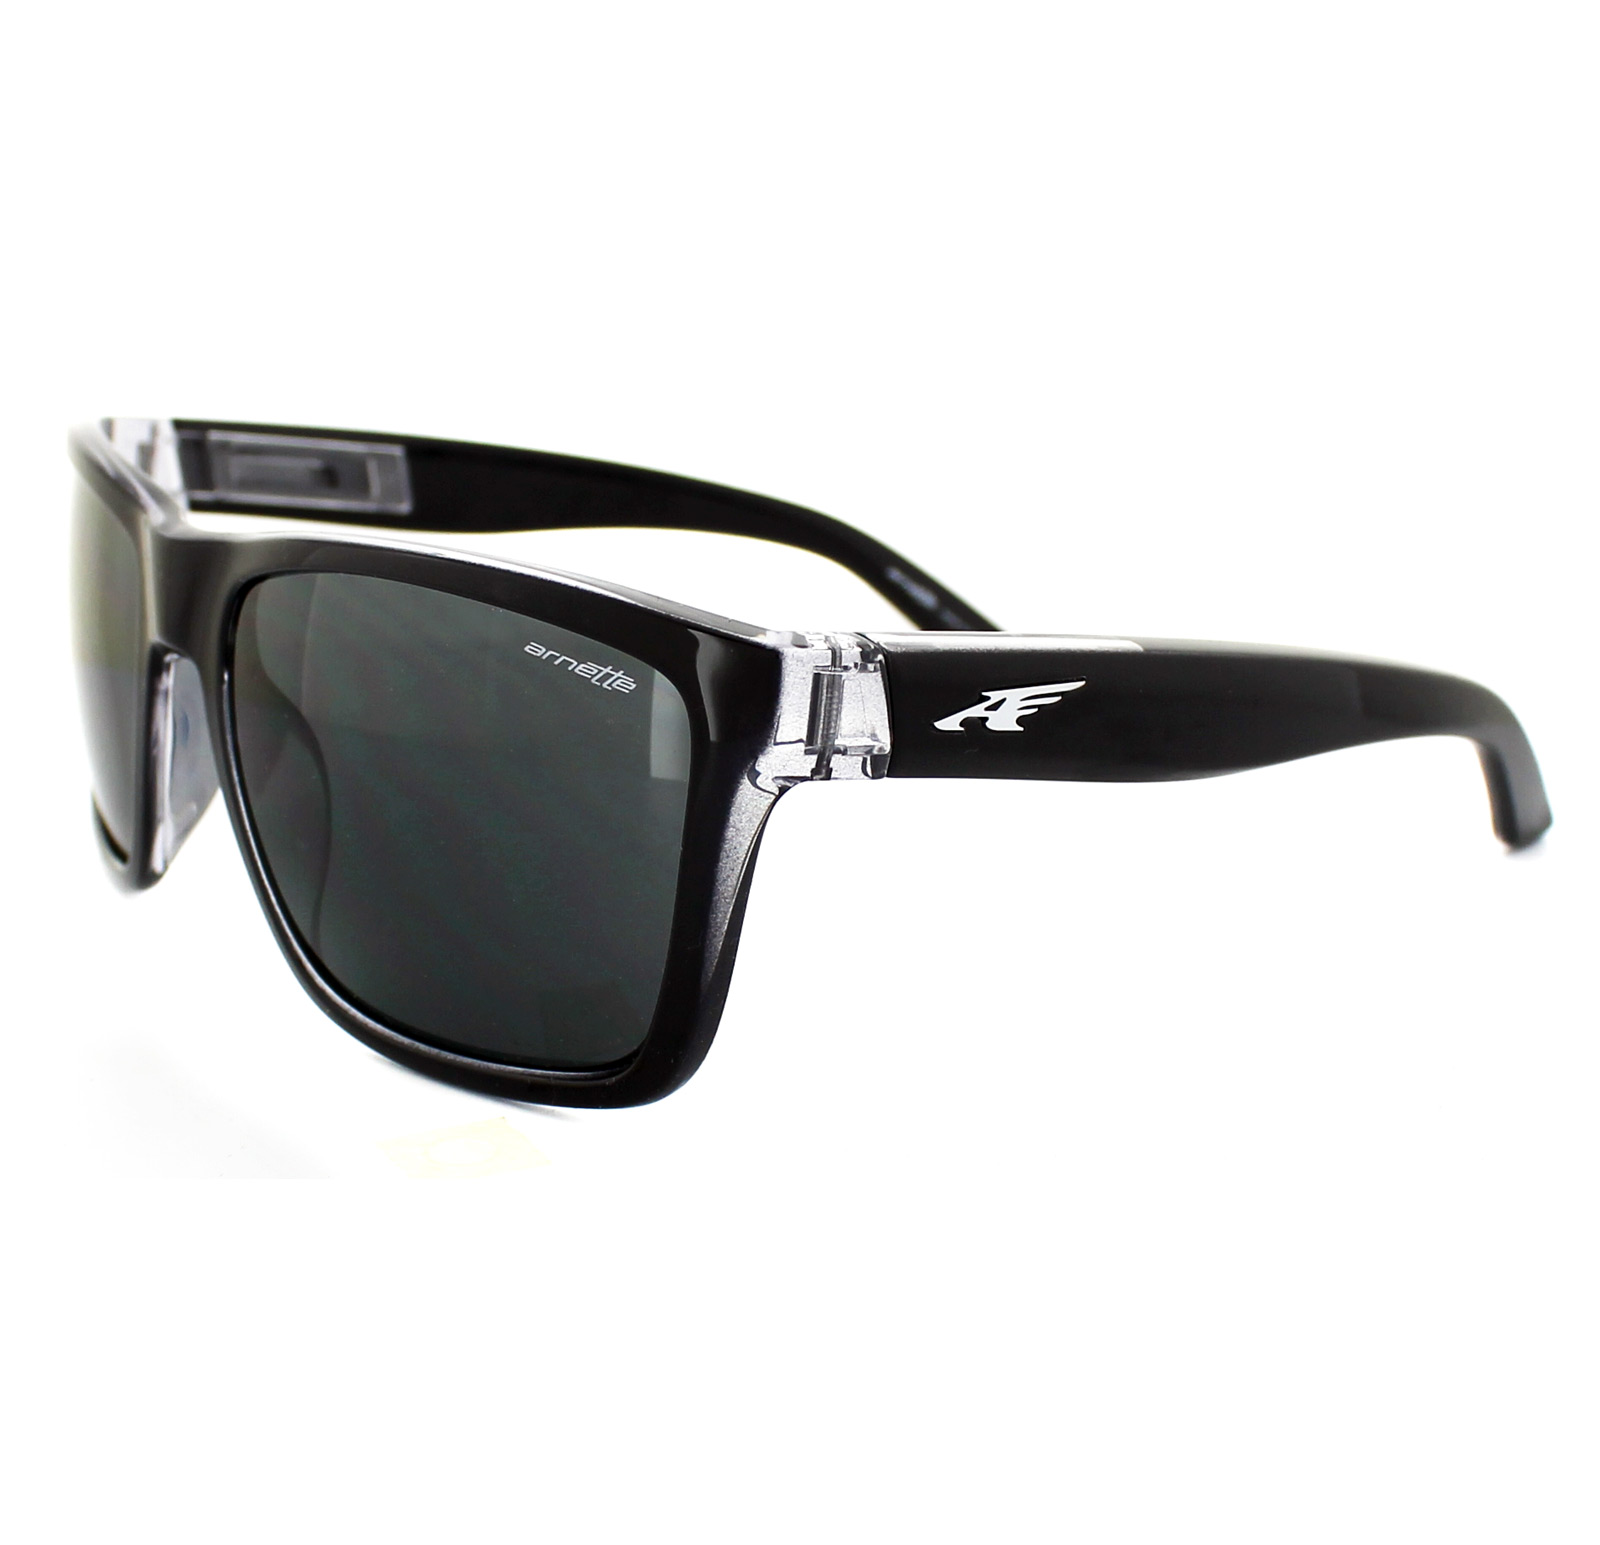 Arnette Sunglasses Australia Online  arnette sunglasses 4177 witch doctor 2159 87 gloss black amp